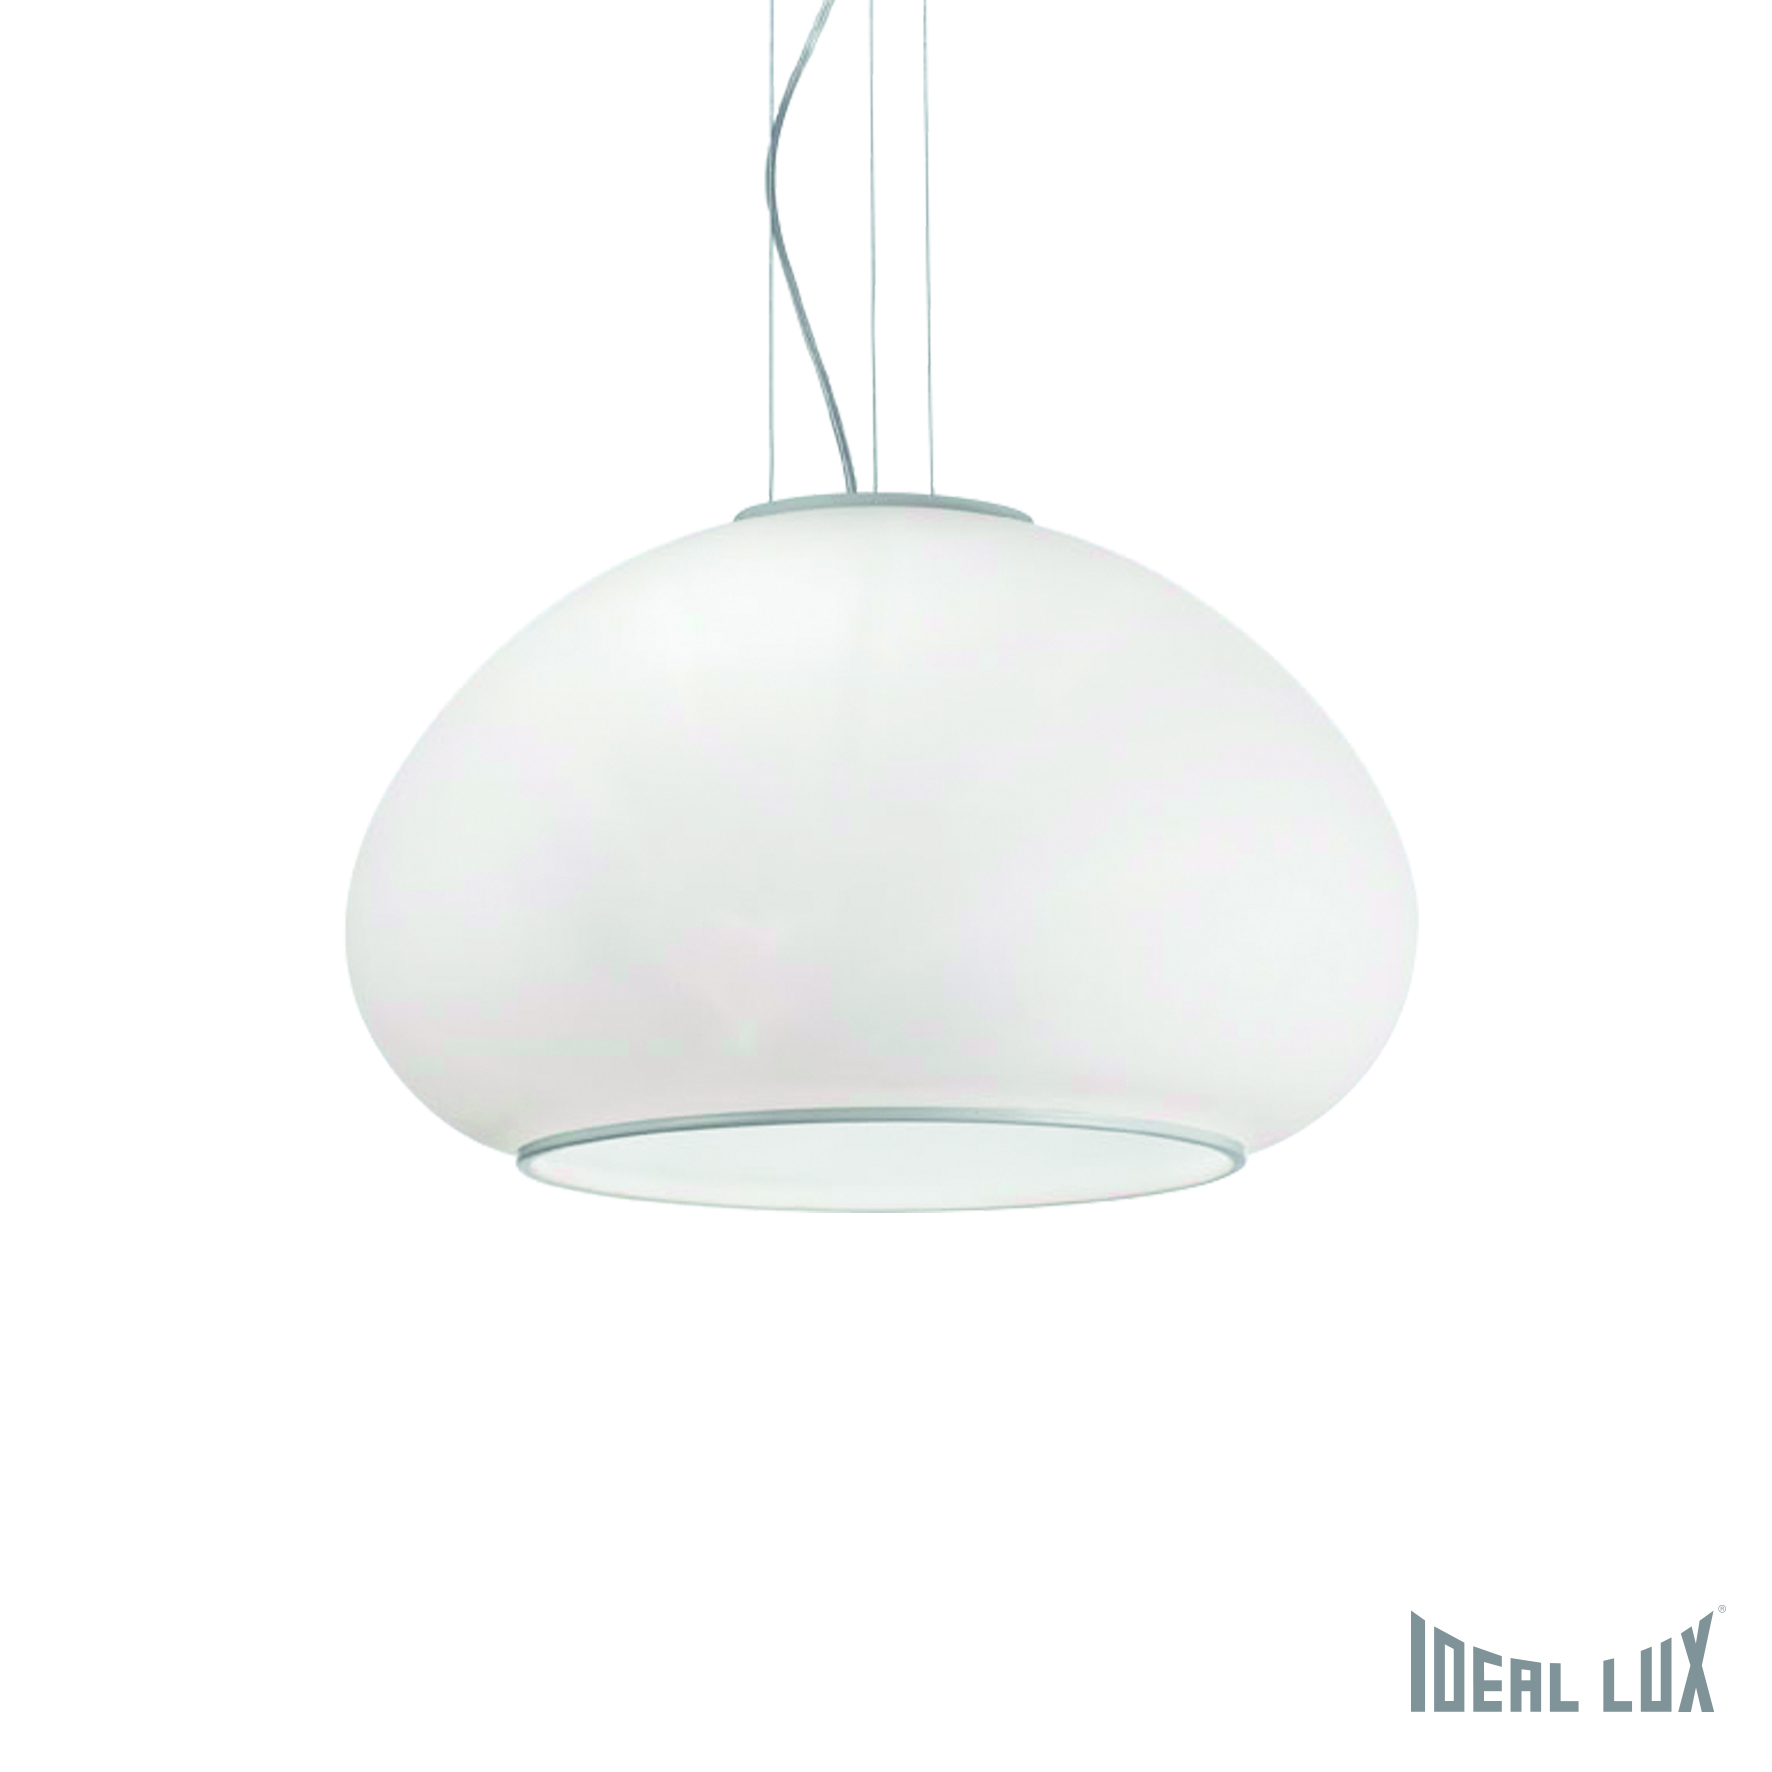 Светильник подвесной Ideal Lux Mama MAMA SP3 D50 ideal lux люстра ideal lux le roy sp3